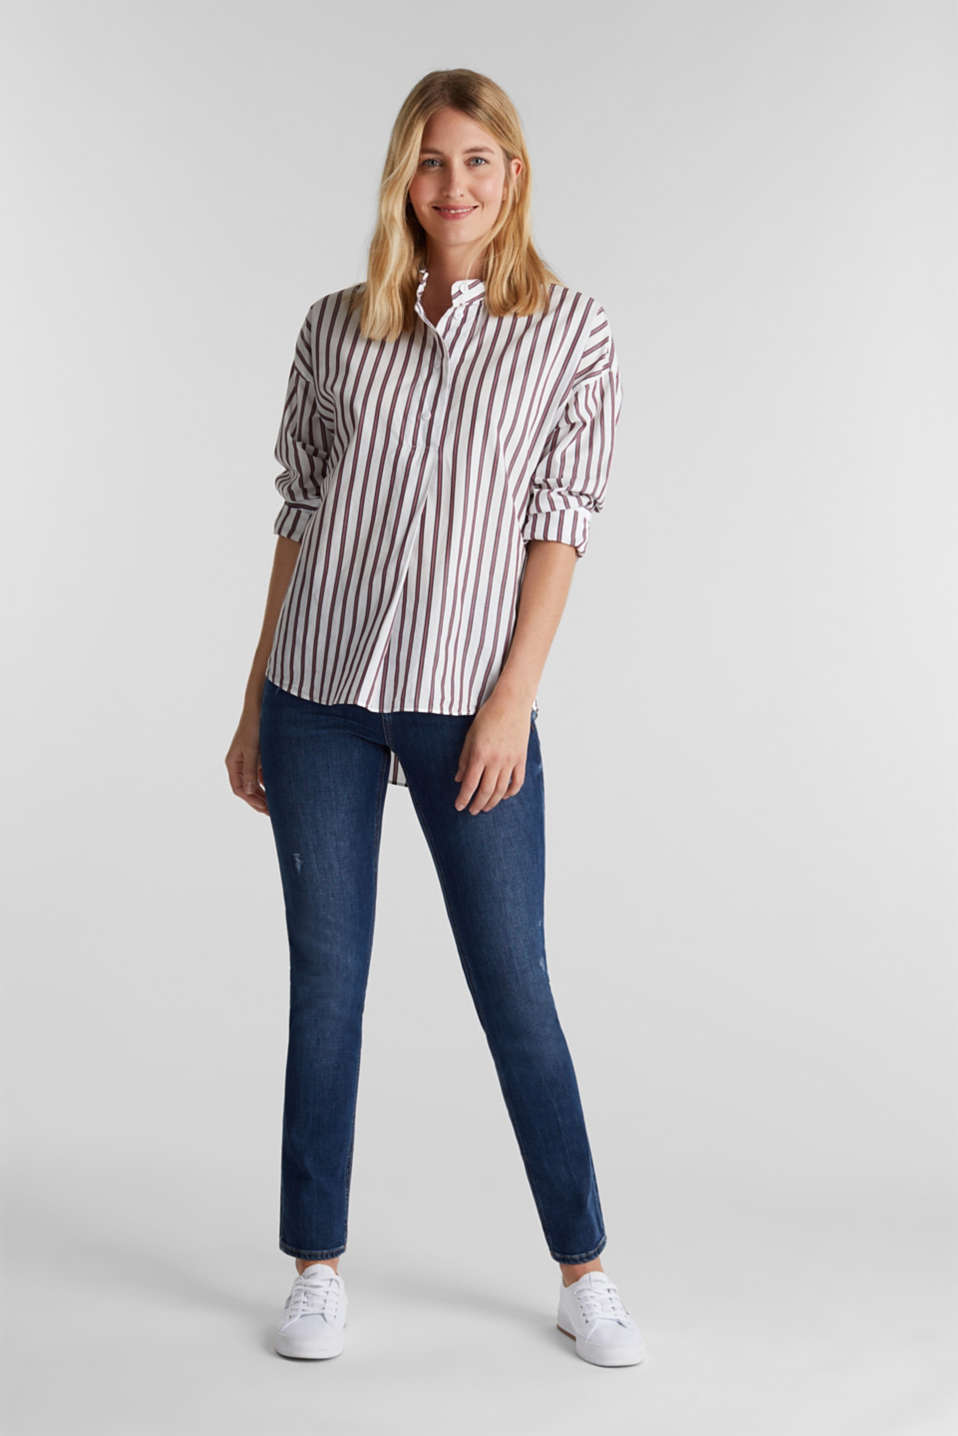 Slip-on blouse with a stand-up collar, 100% cotton, OFF WHITE, detail